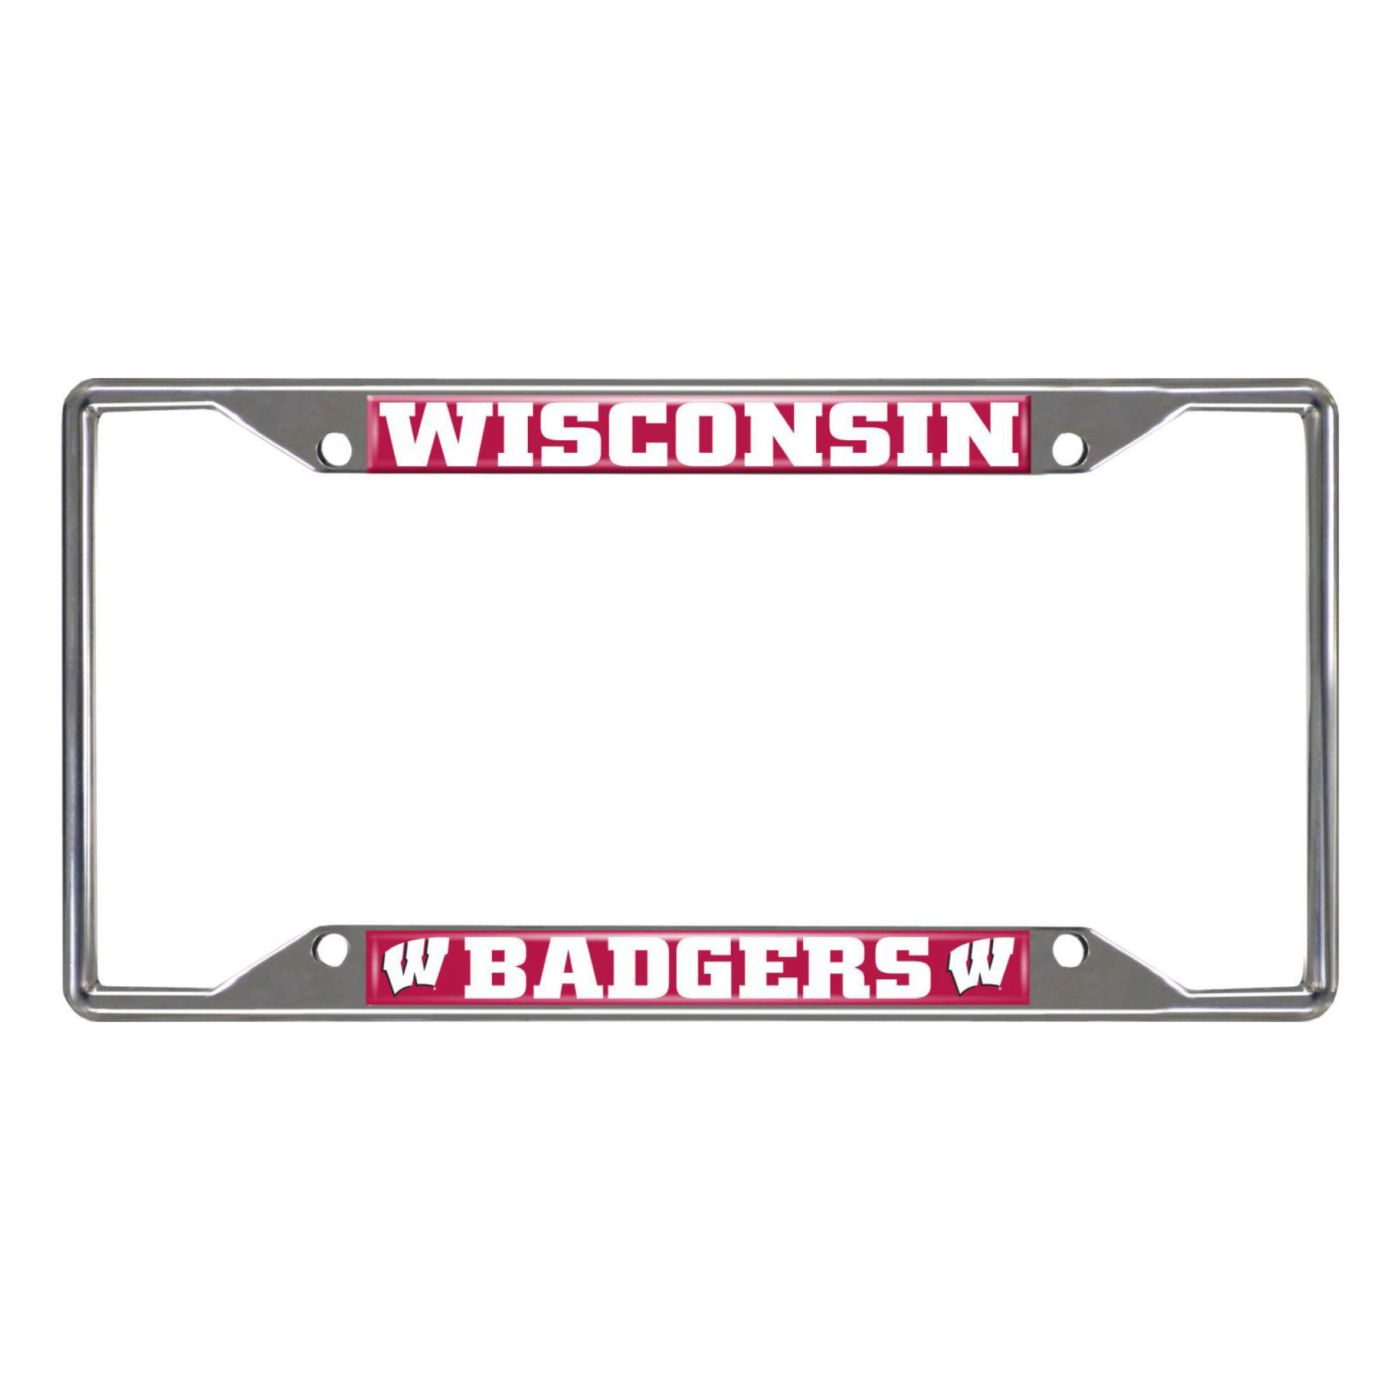 FANMATS Wisconsin Badgers License Plate Frame